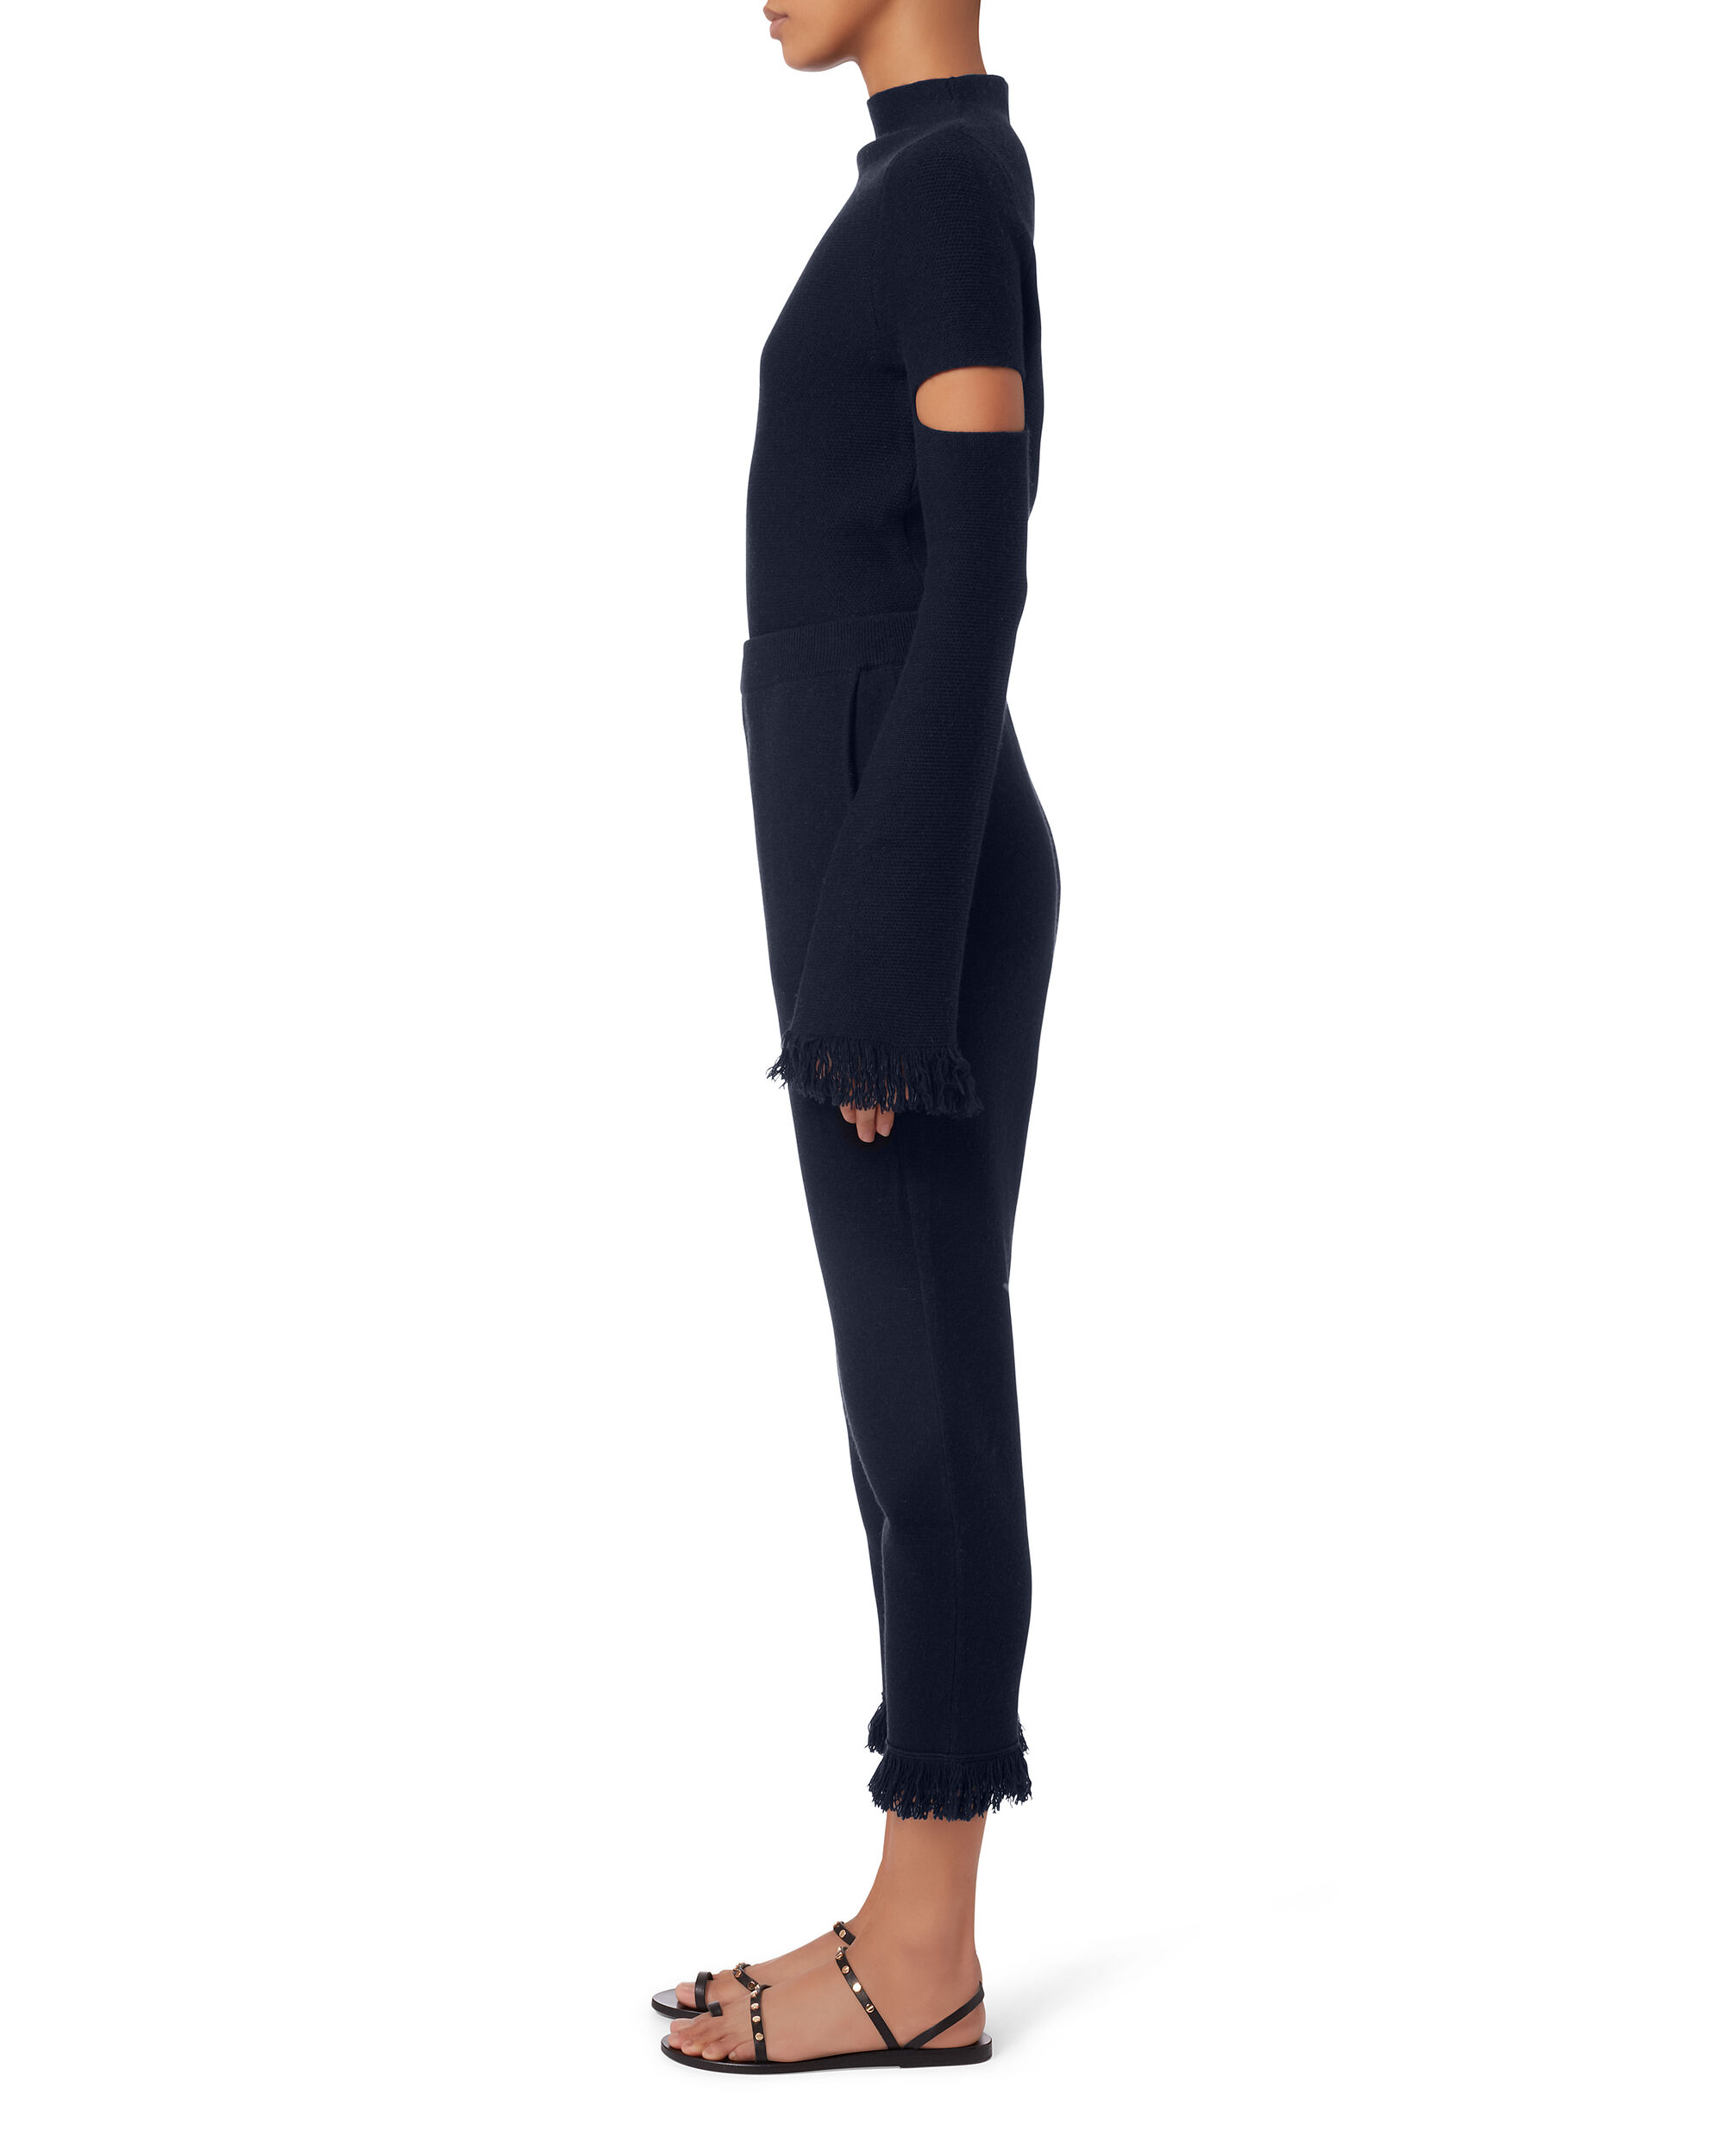 Haxel Cropped Trousers, BLACK, hi-res